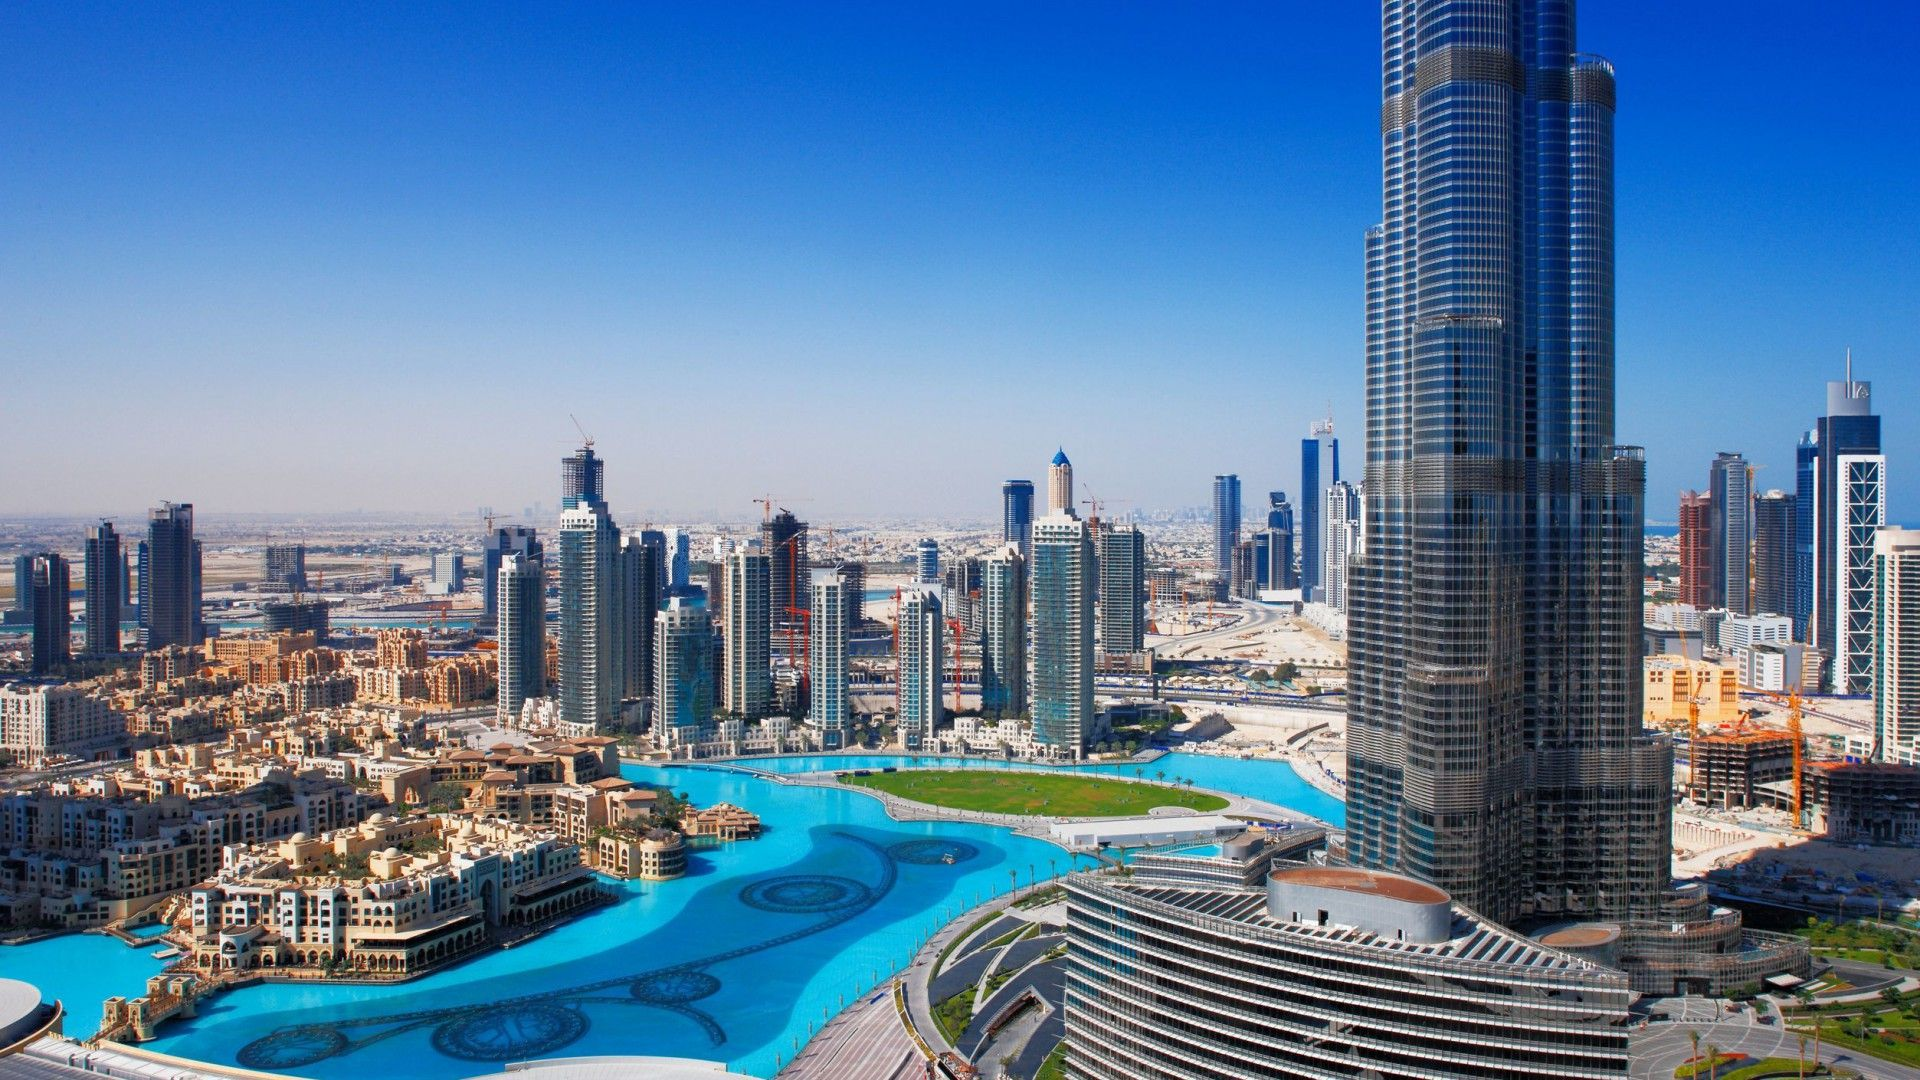 dubai is famous for tourist destination such as palm island